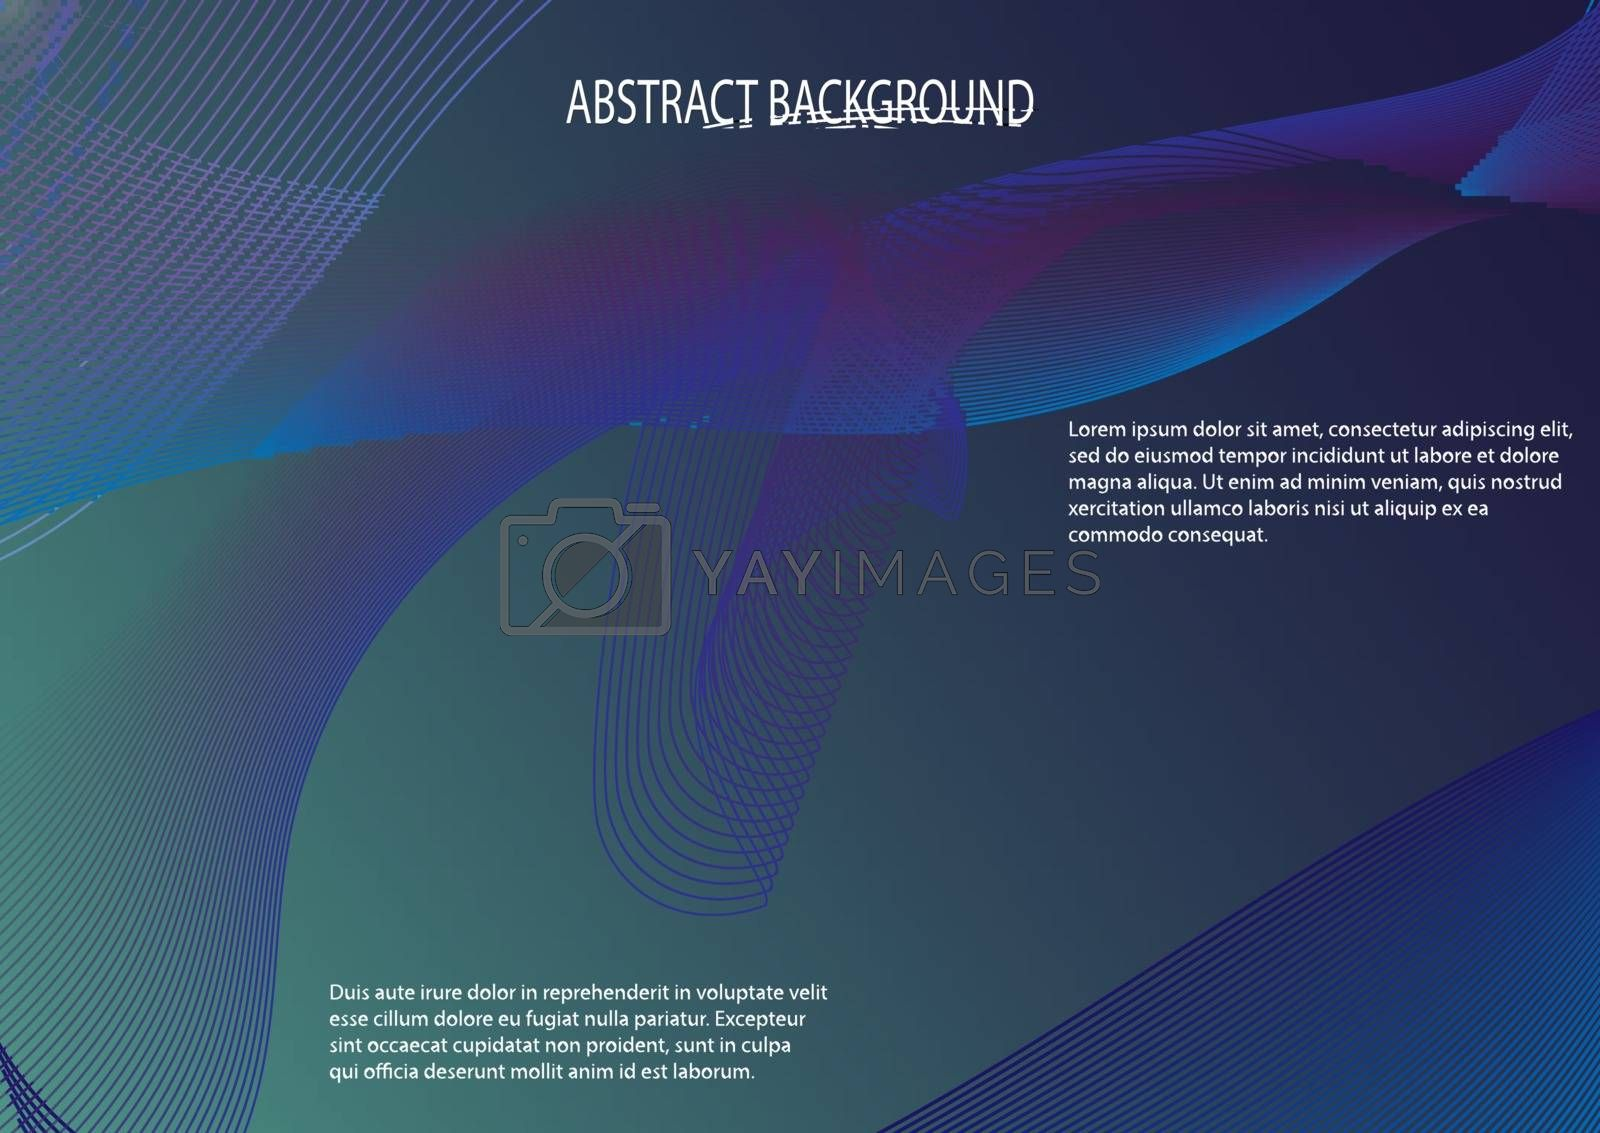 Royalty free image of Abstract background in blue for design and decoration by Grommik